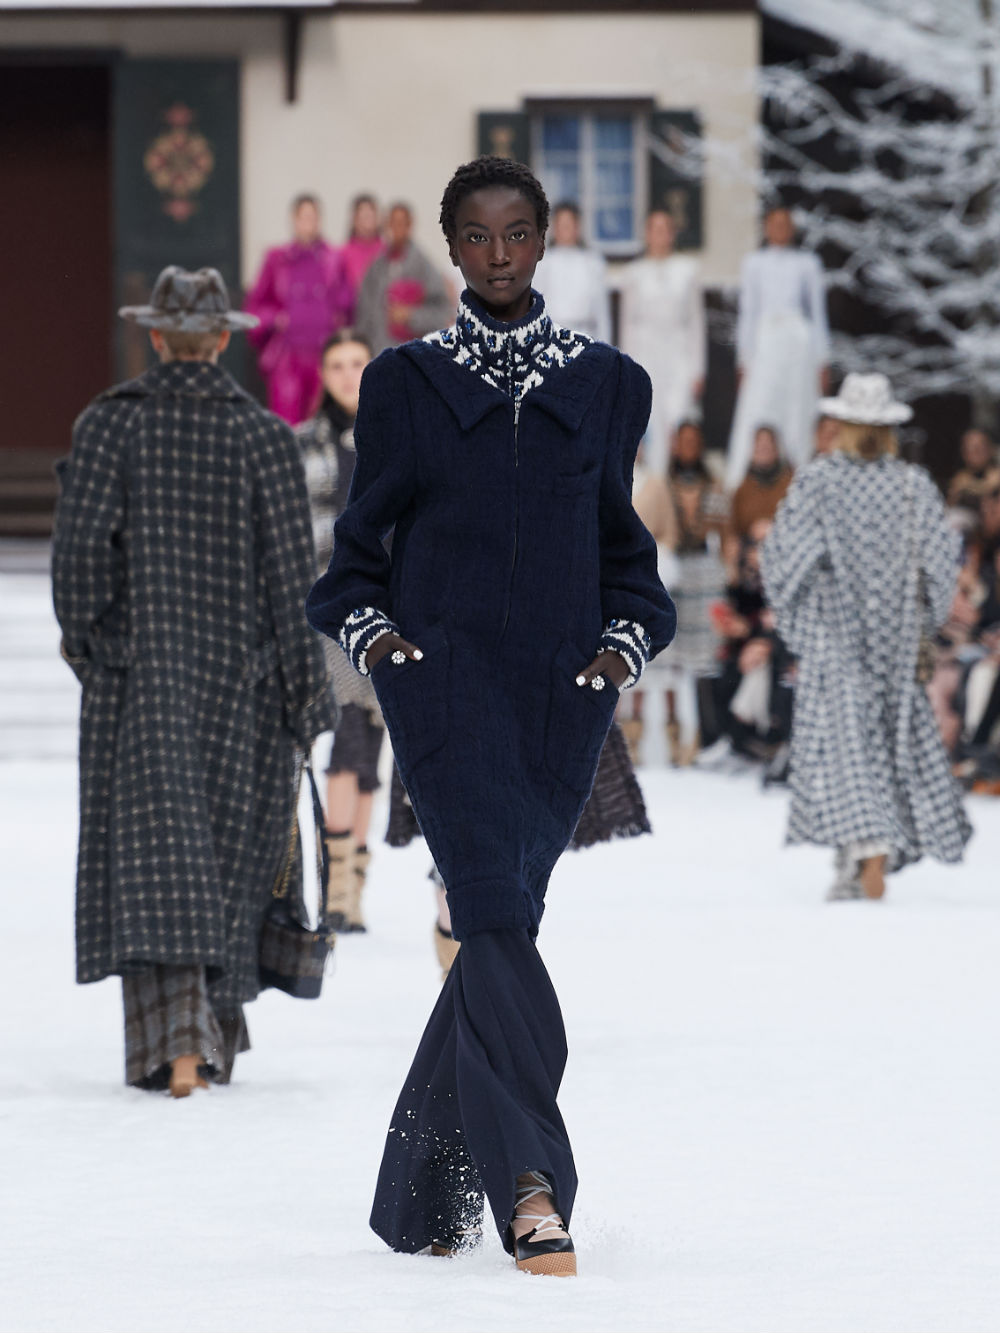 FALL-WINTER 201920 READY-TO-WEAR COLLECTION (12)